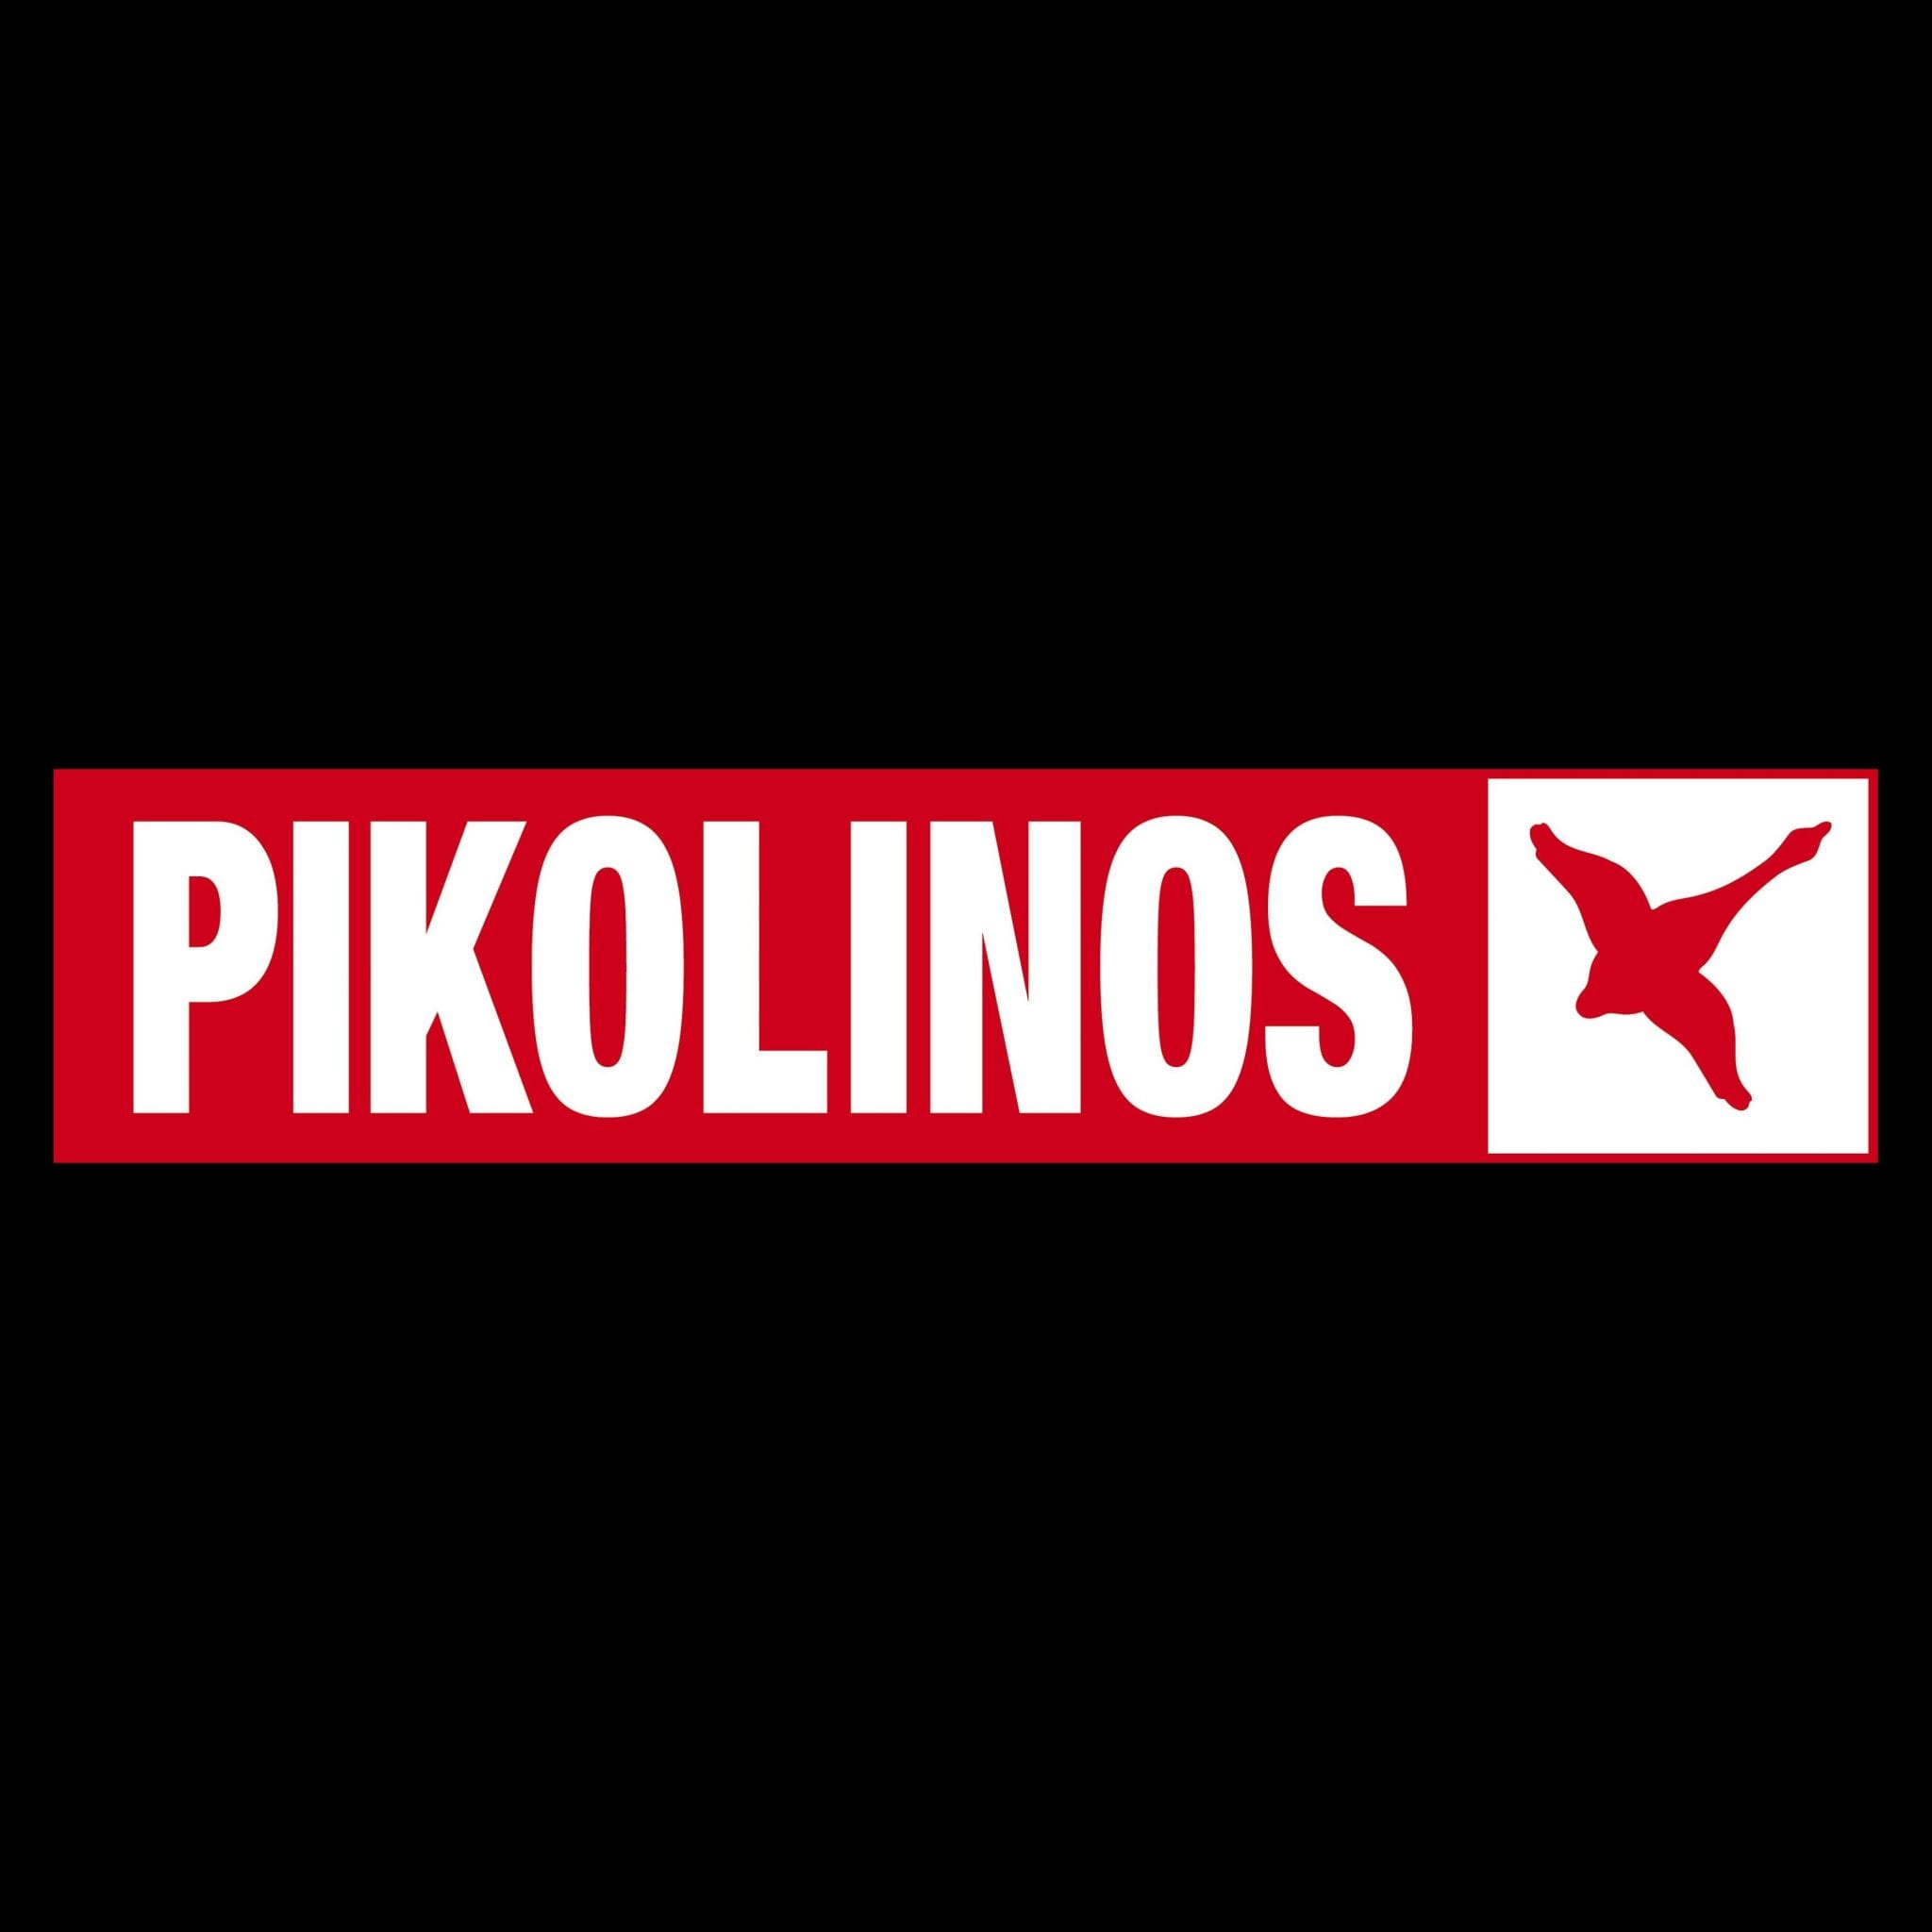 Up to 50% off – Pikolinos FR OUTLET